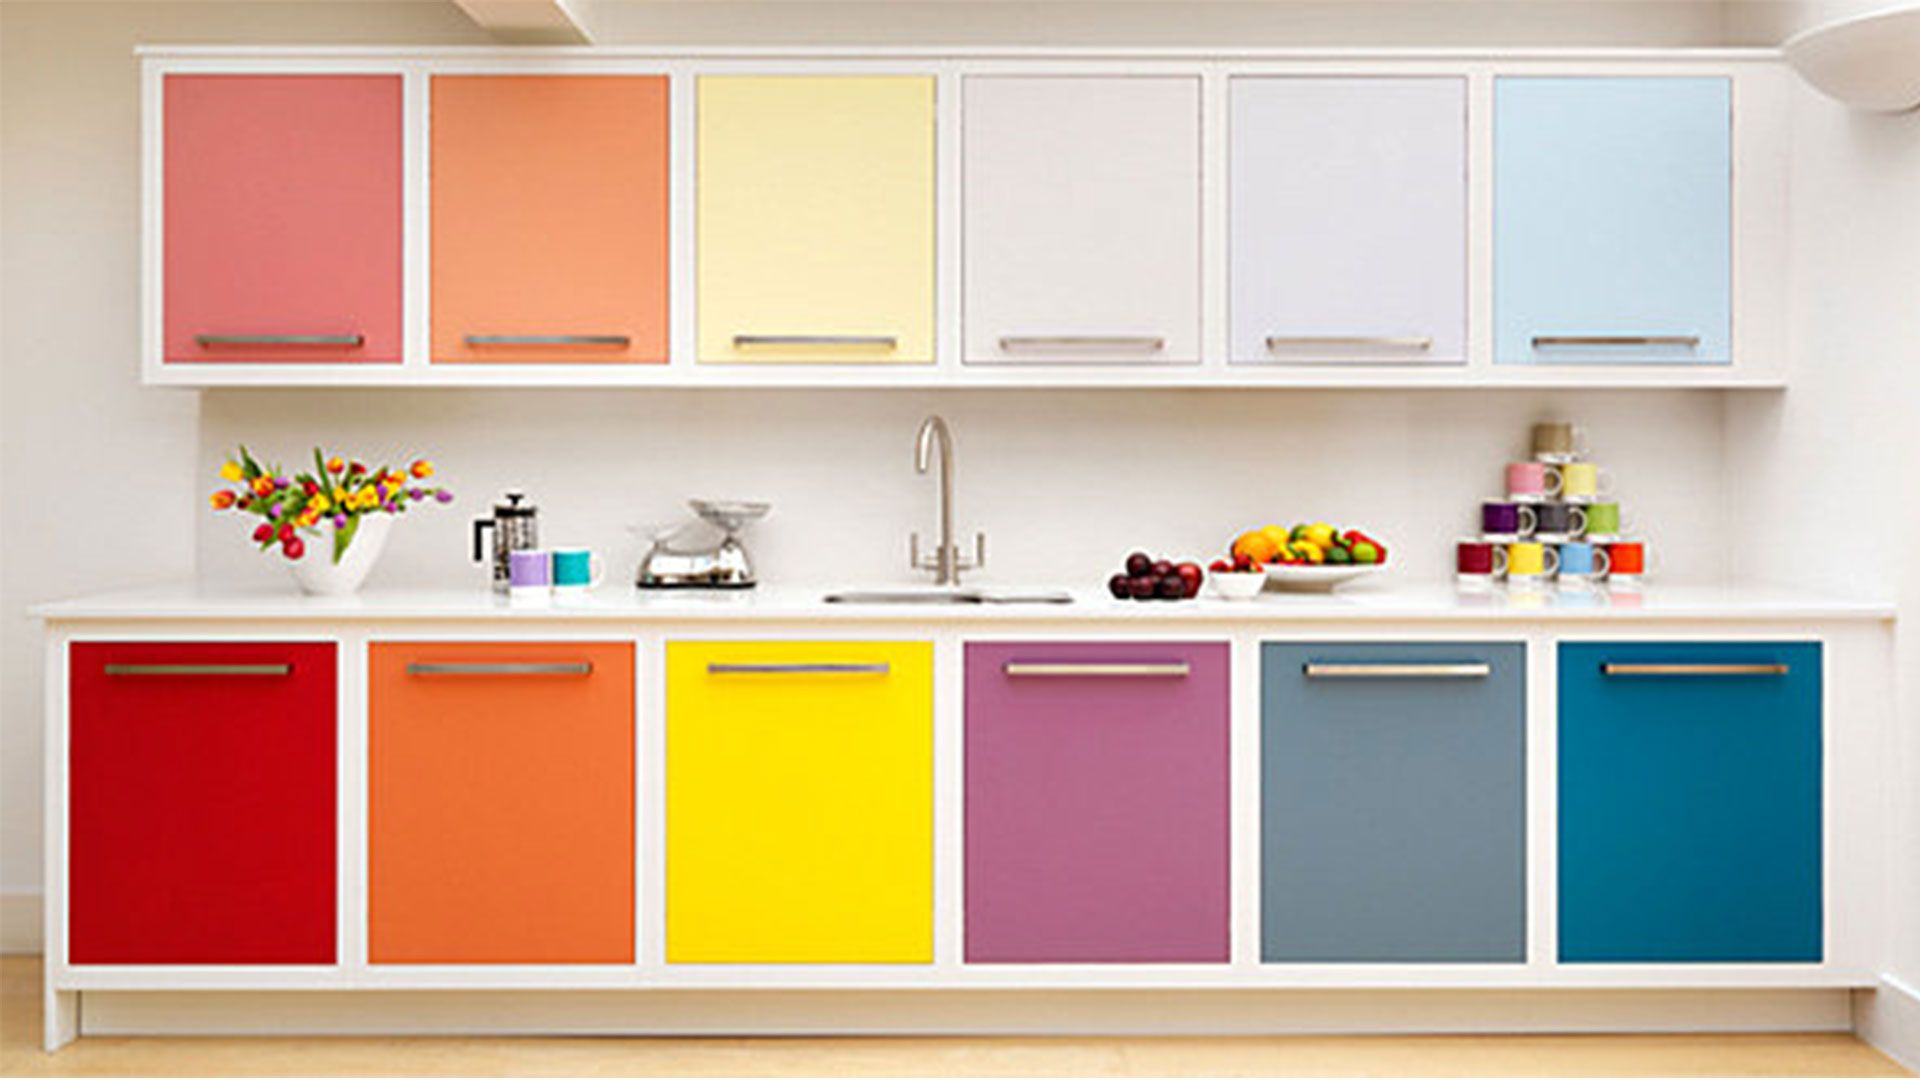 15 Modern kitchen design ideas in bright color combinations  Cabinet Ideas colourful cabinet doors for minimalist